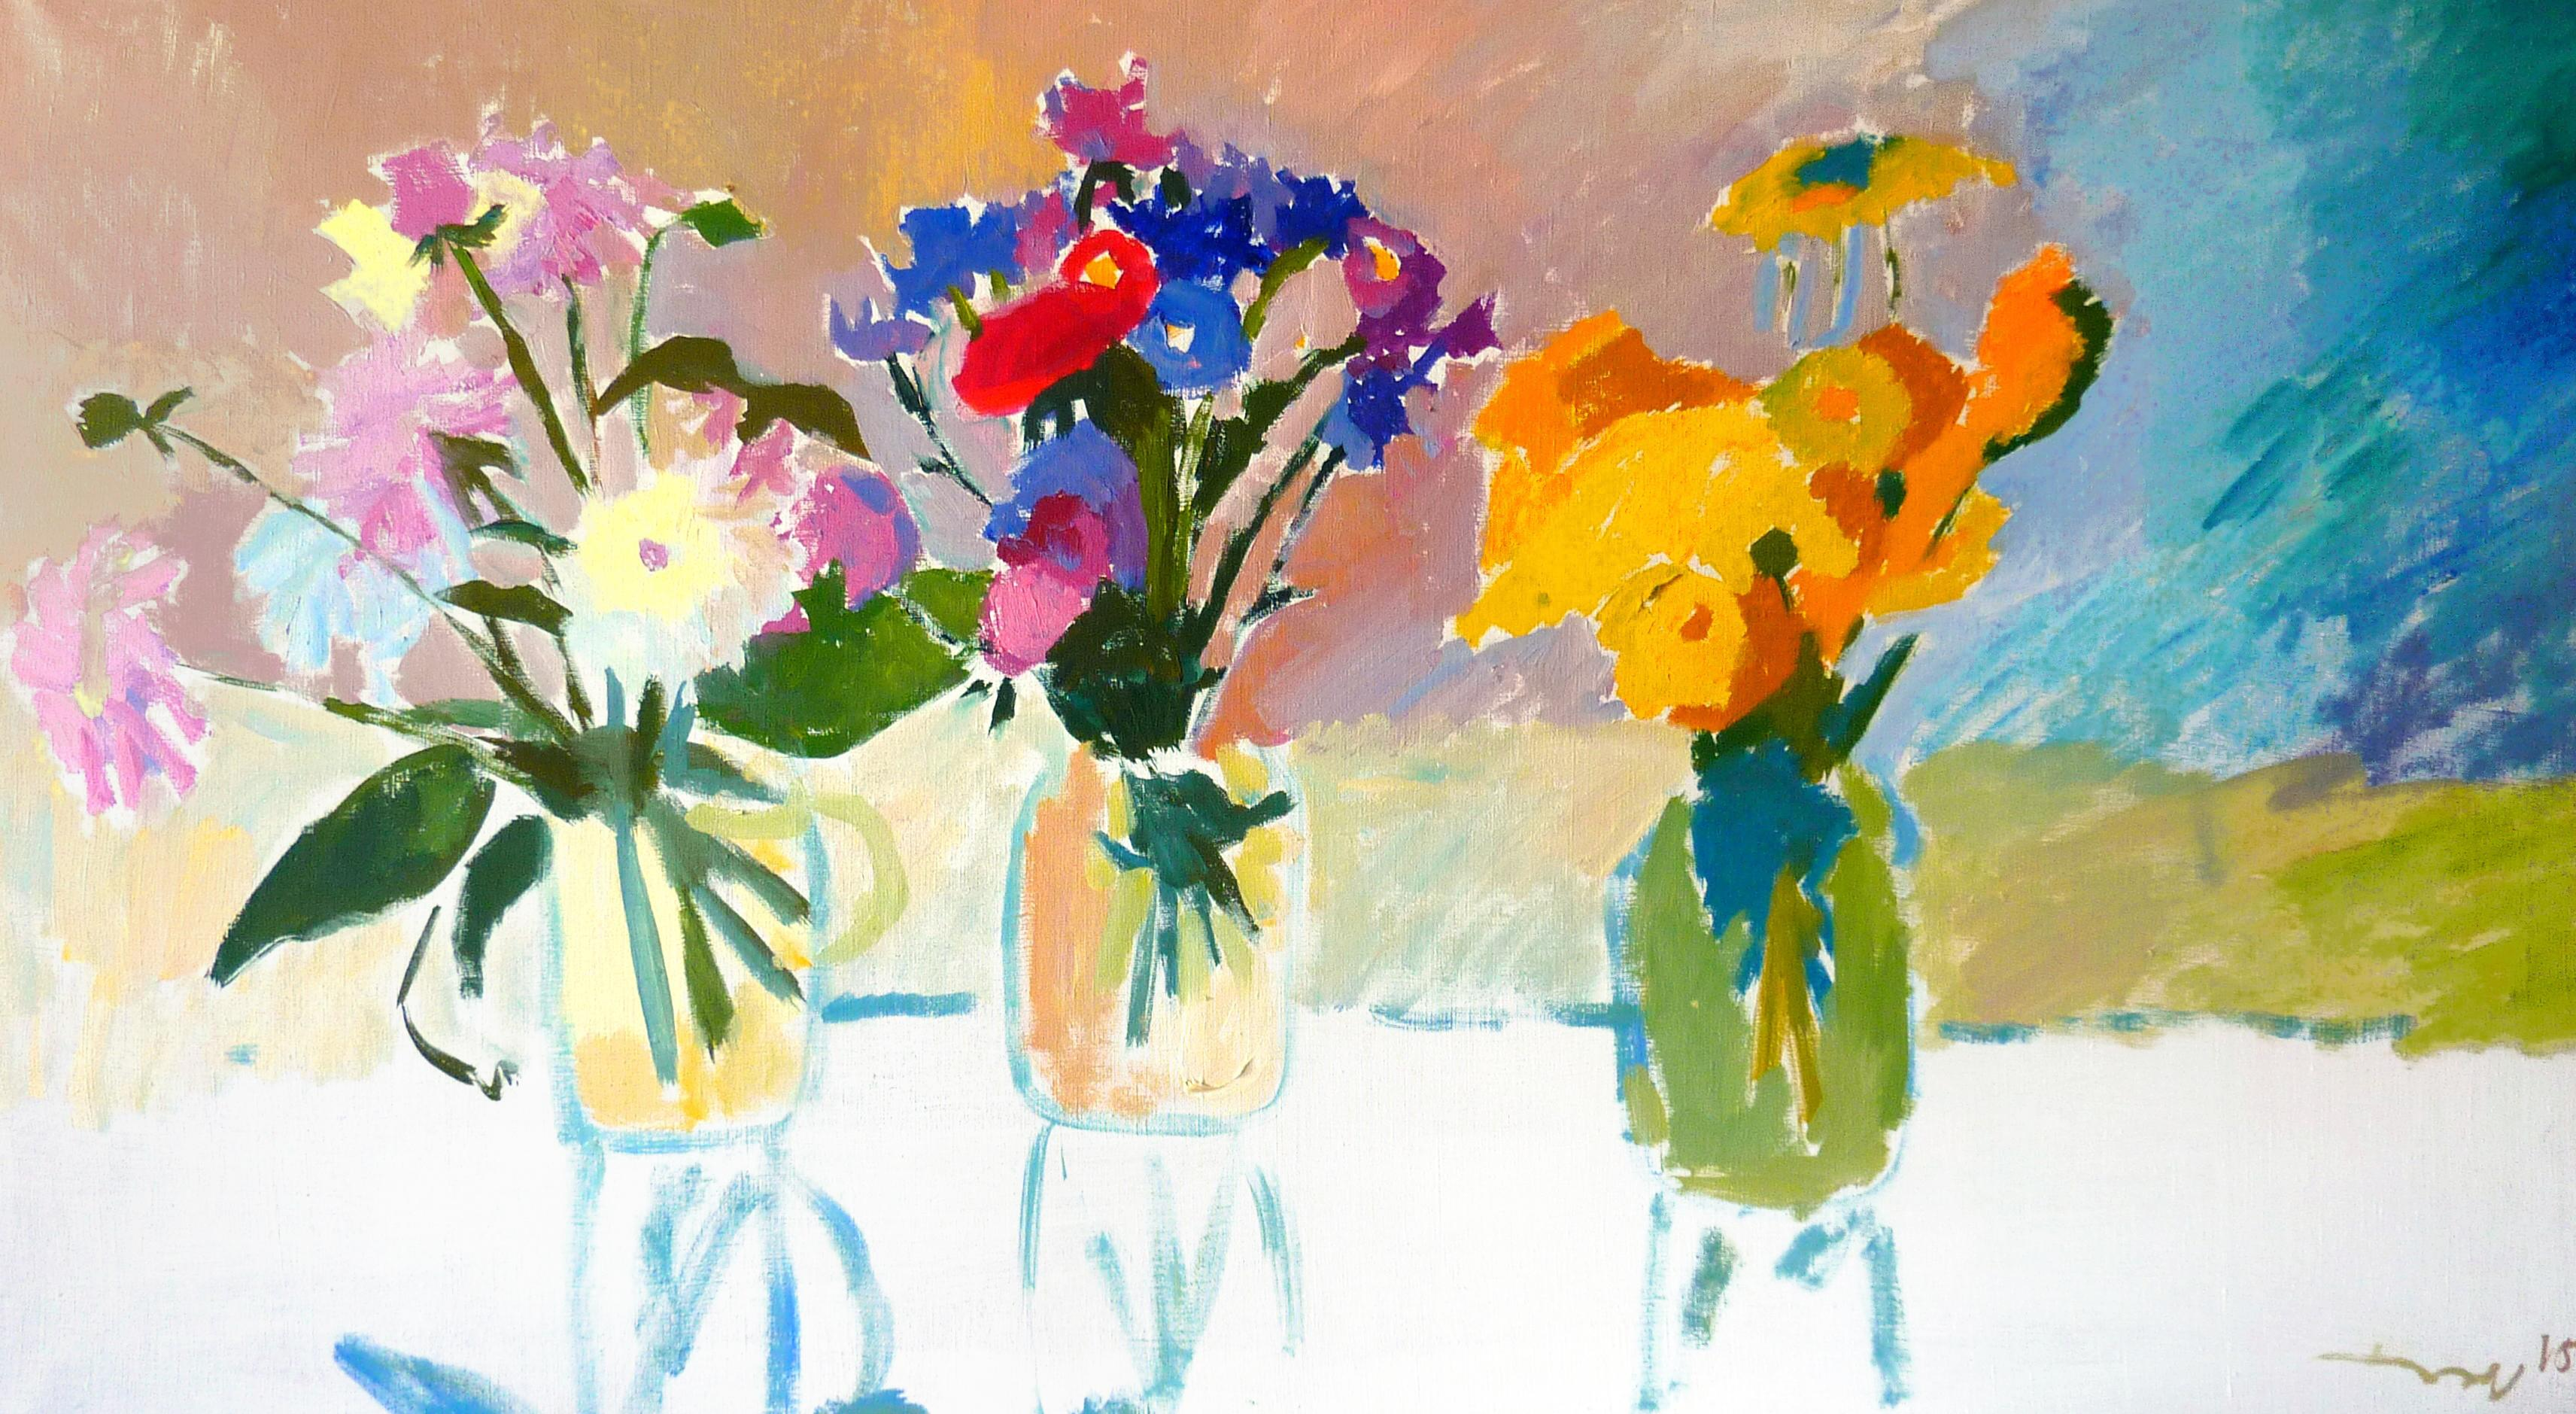 Summer Flowers - 21st Century Contemporary Fauvist Flower Oil Painting